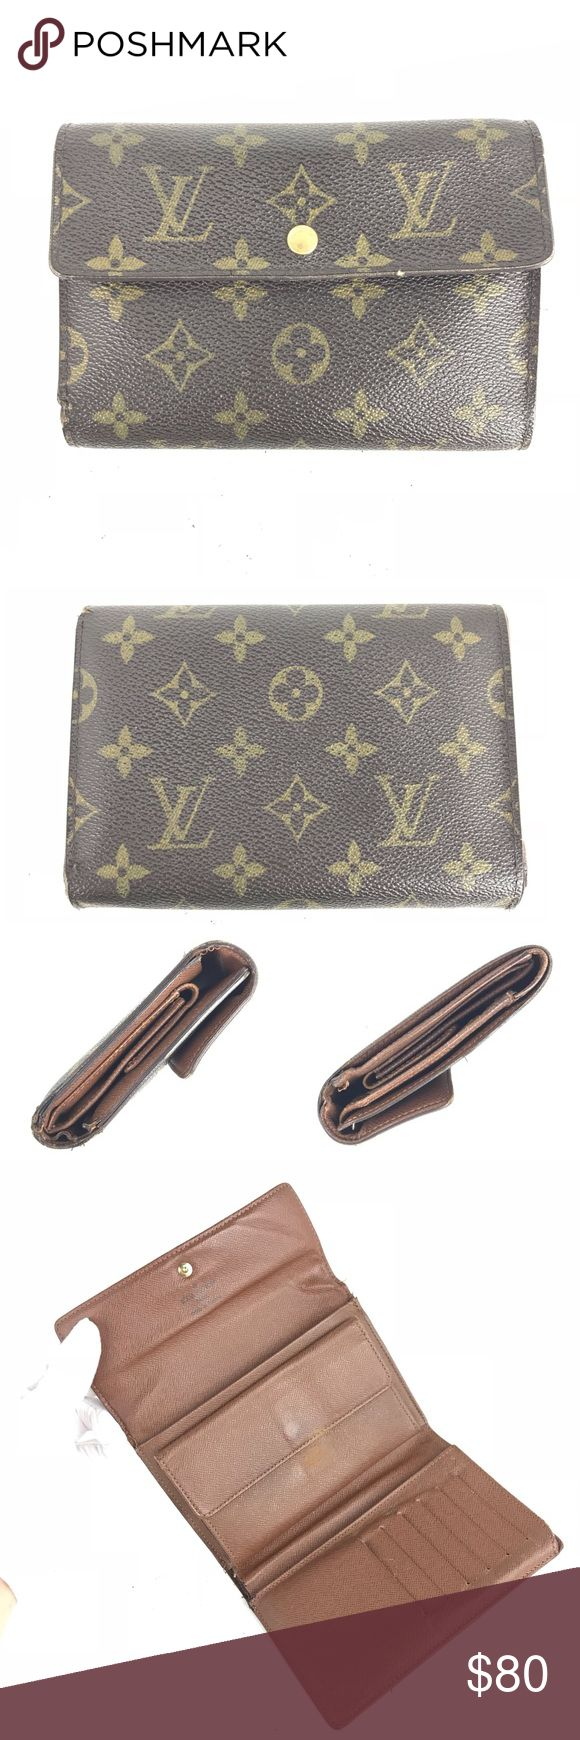 Louis Vuitton Monogram Trifold Wallet Louis Vuitton Monogram Trifold Wallet ________________________________ Item Description Made in [France] ~ Date Code [SP0065] Material [PVC/Leather] ~ Color [Monogram] _____________________________ Condition Outside [Fair] Scratches, stains, rubbing marks, canvas separation and edge wear - - - - - - - - - - - - - - - - - - - - - - - - - - - - - - Inside [Fair] Scratches, stains, rubbing marks, loose threads and stretched out pockets Louis Vuitton…